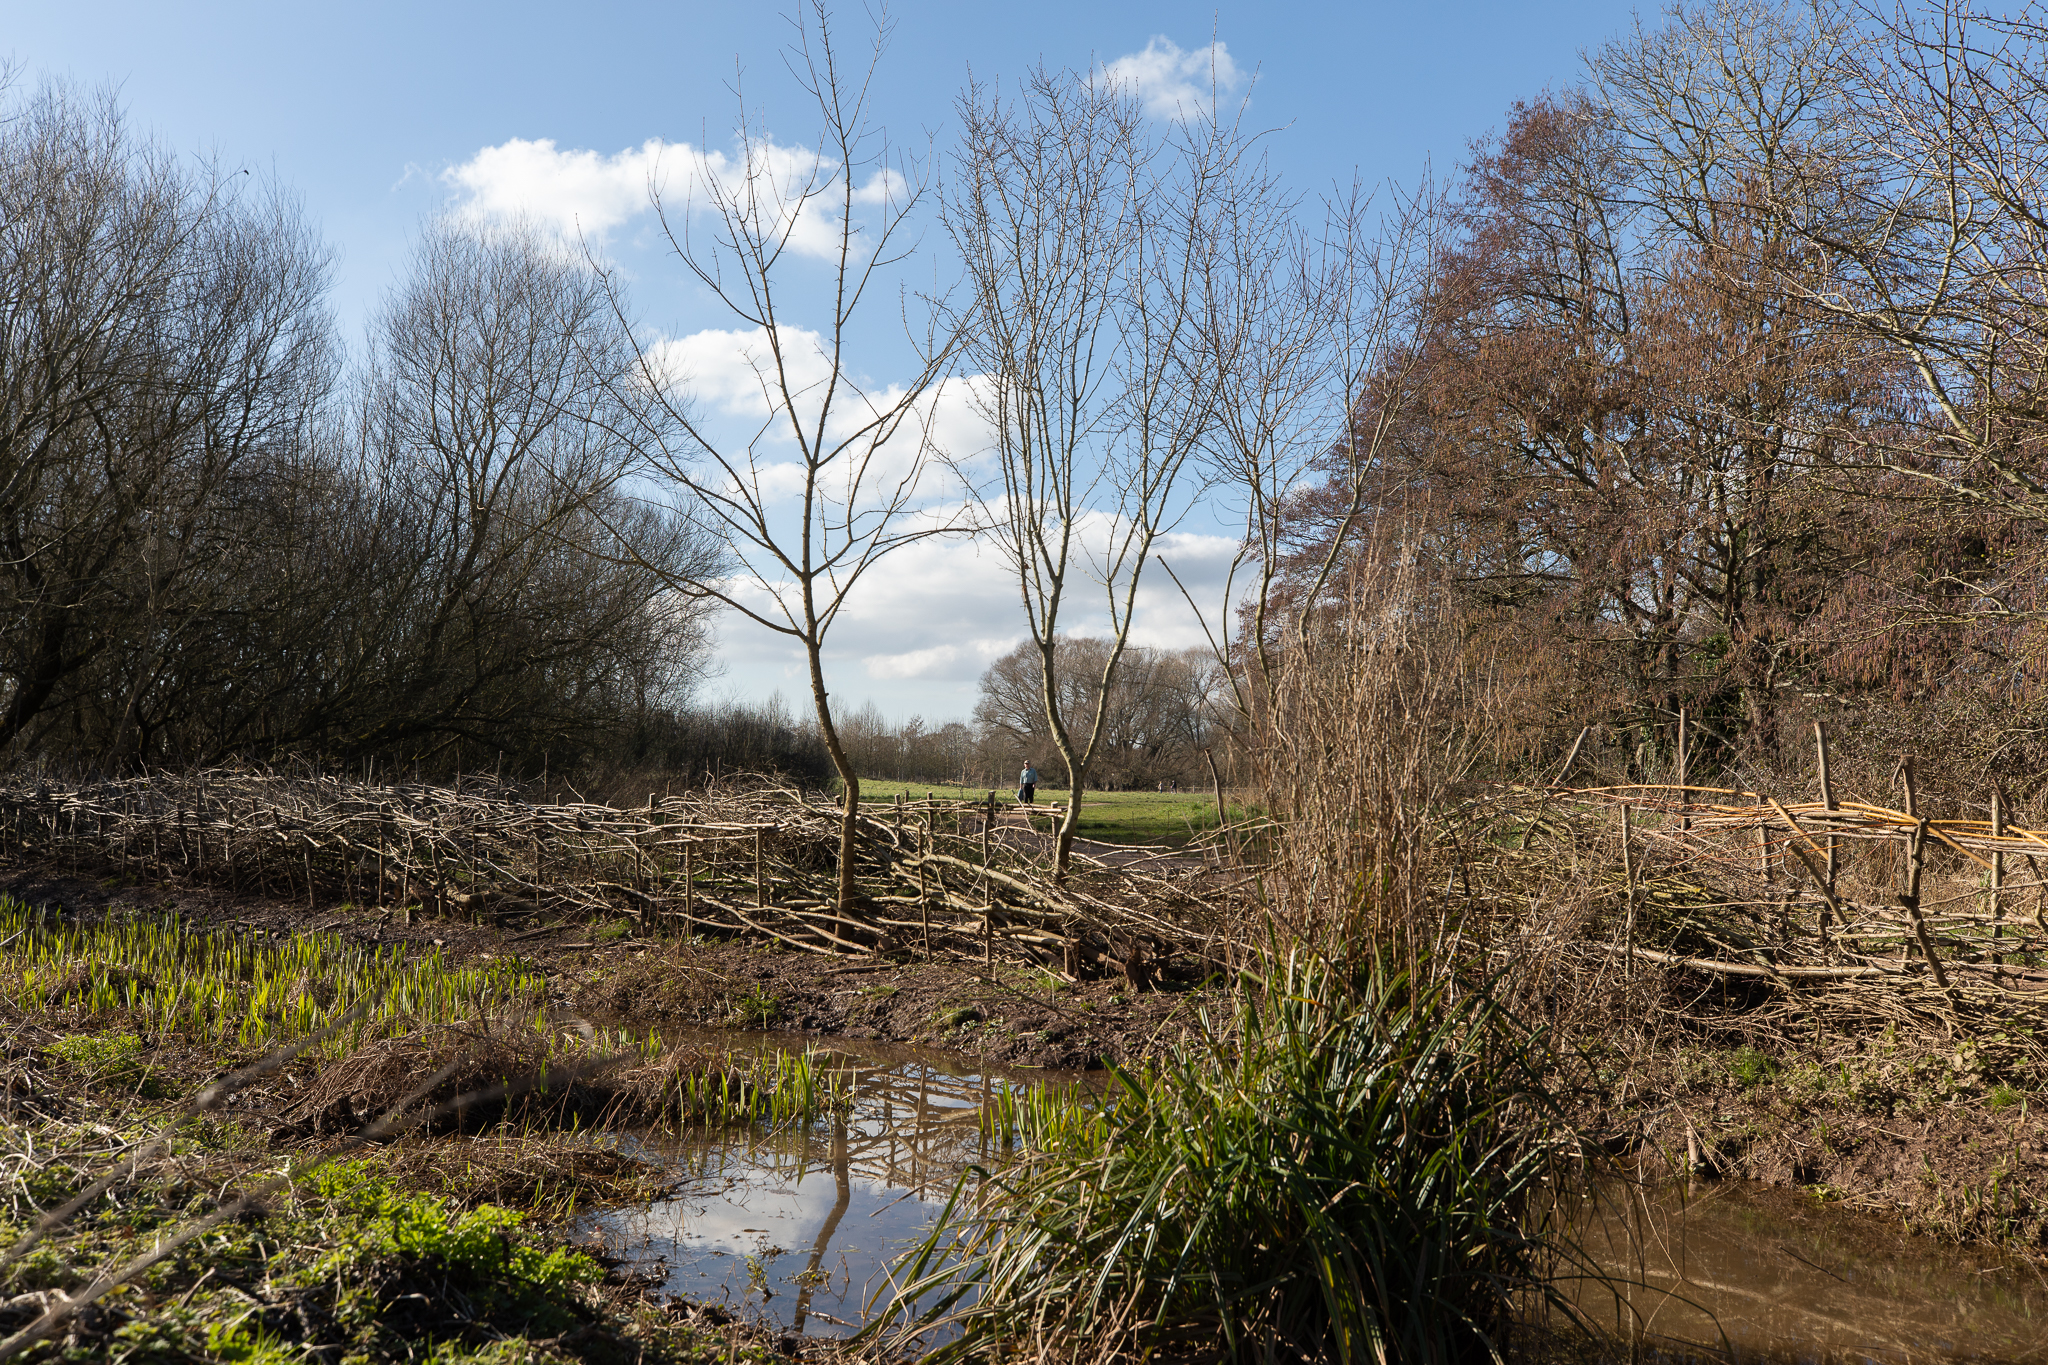 Laid hedge after nine years of growth, some standing trees, water filled ditch in the foreground.